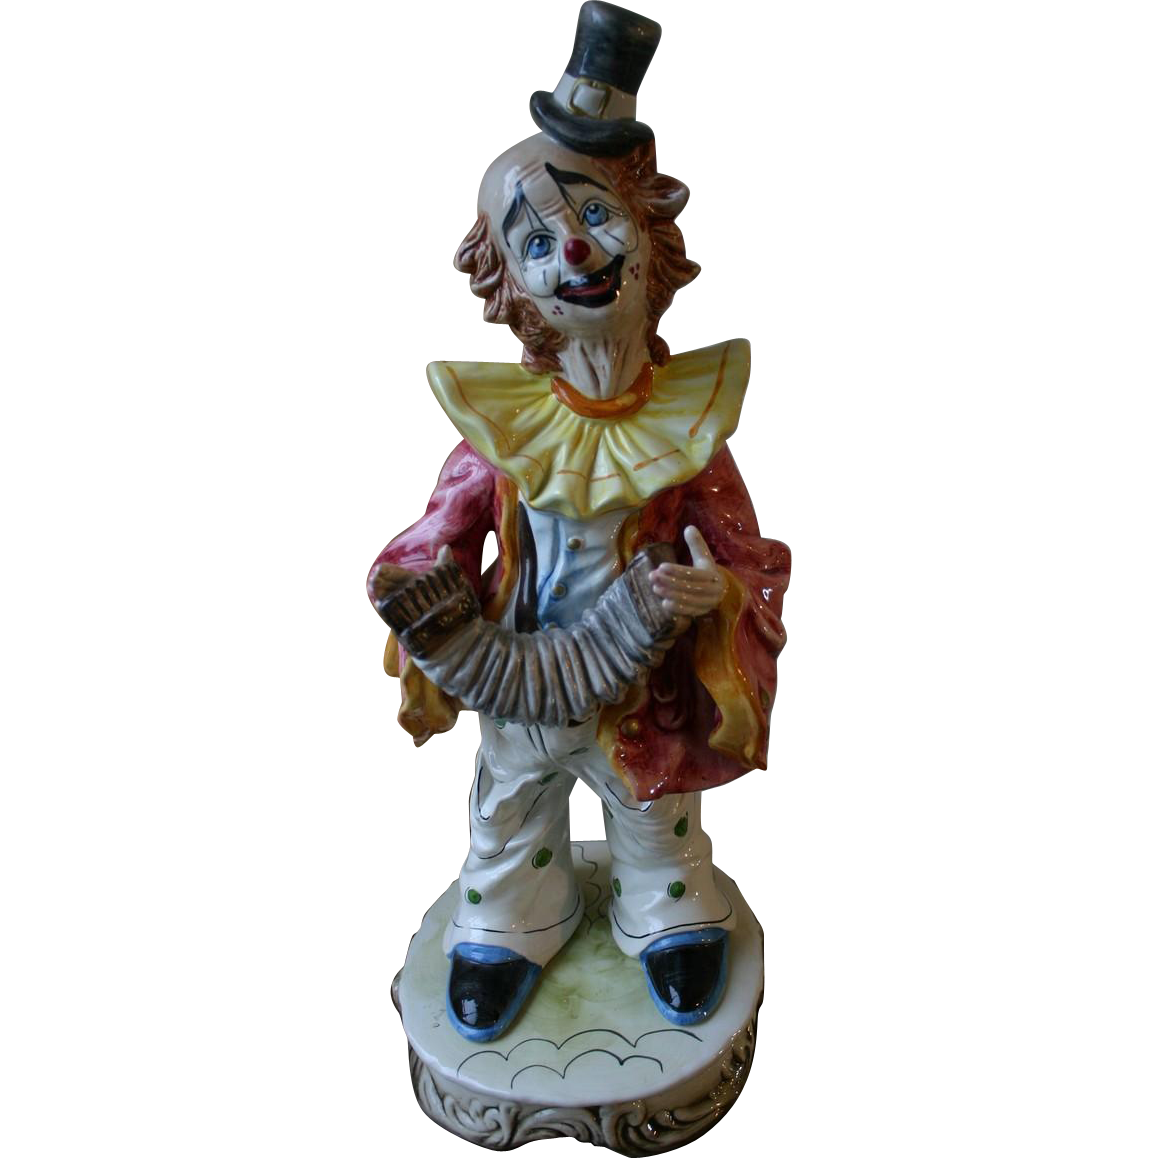 Charming Large CAPODIMONTE Italian Porcelain Clown Playing Accordion